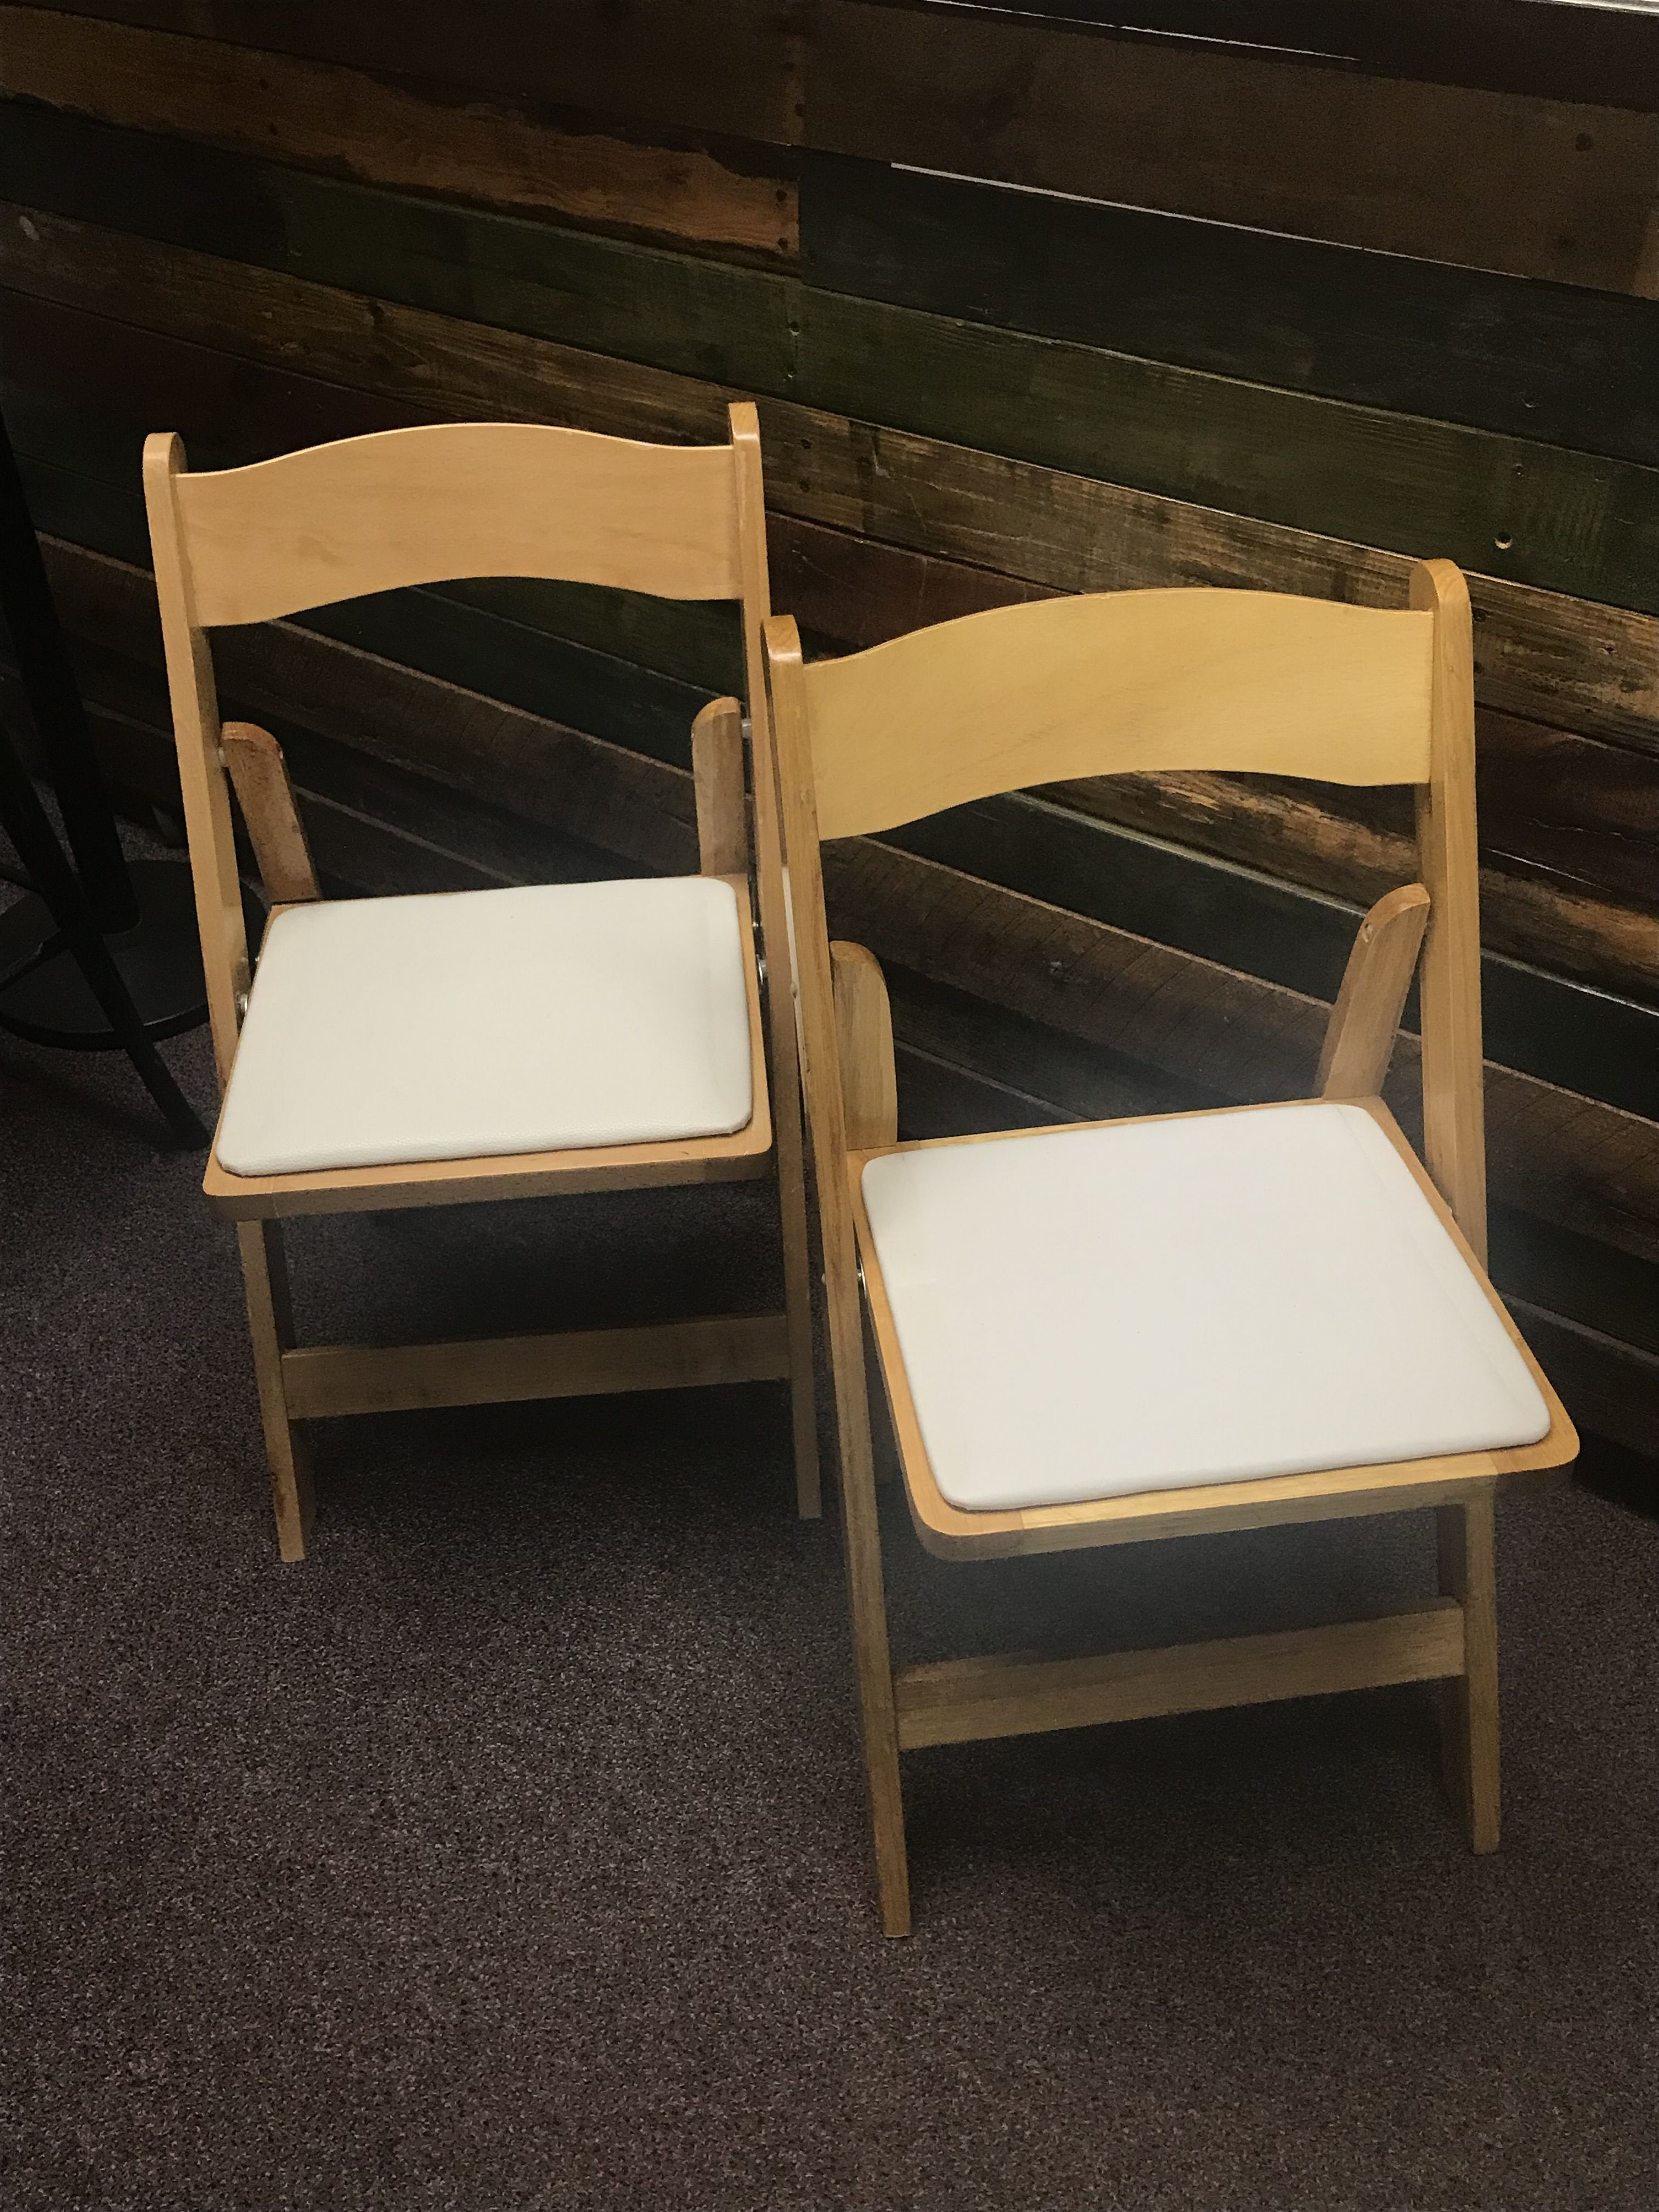 Natural Wood Folding Chairs With White Padded Seat Would Go